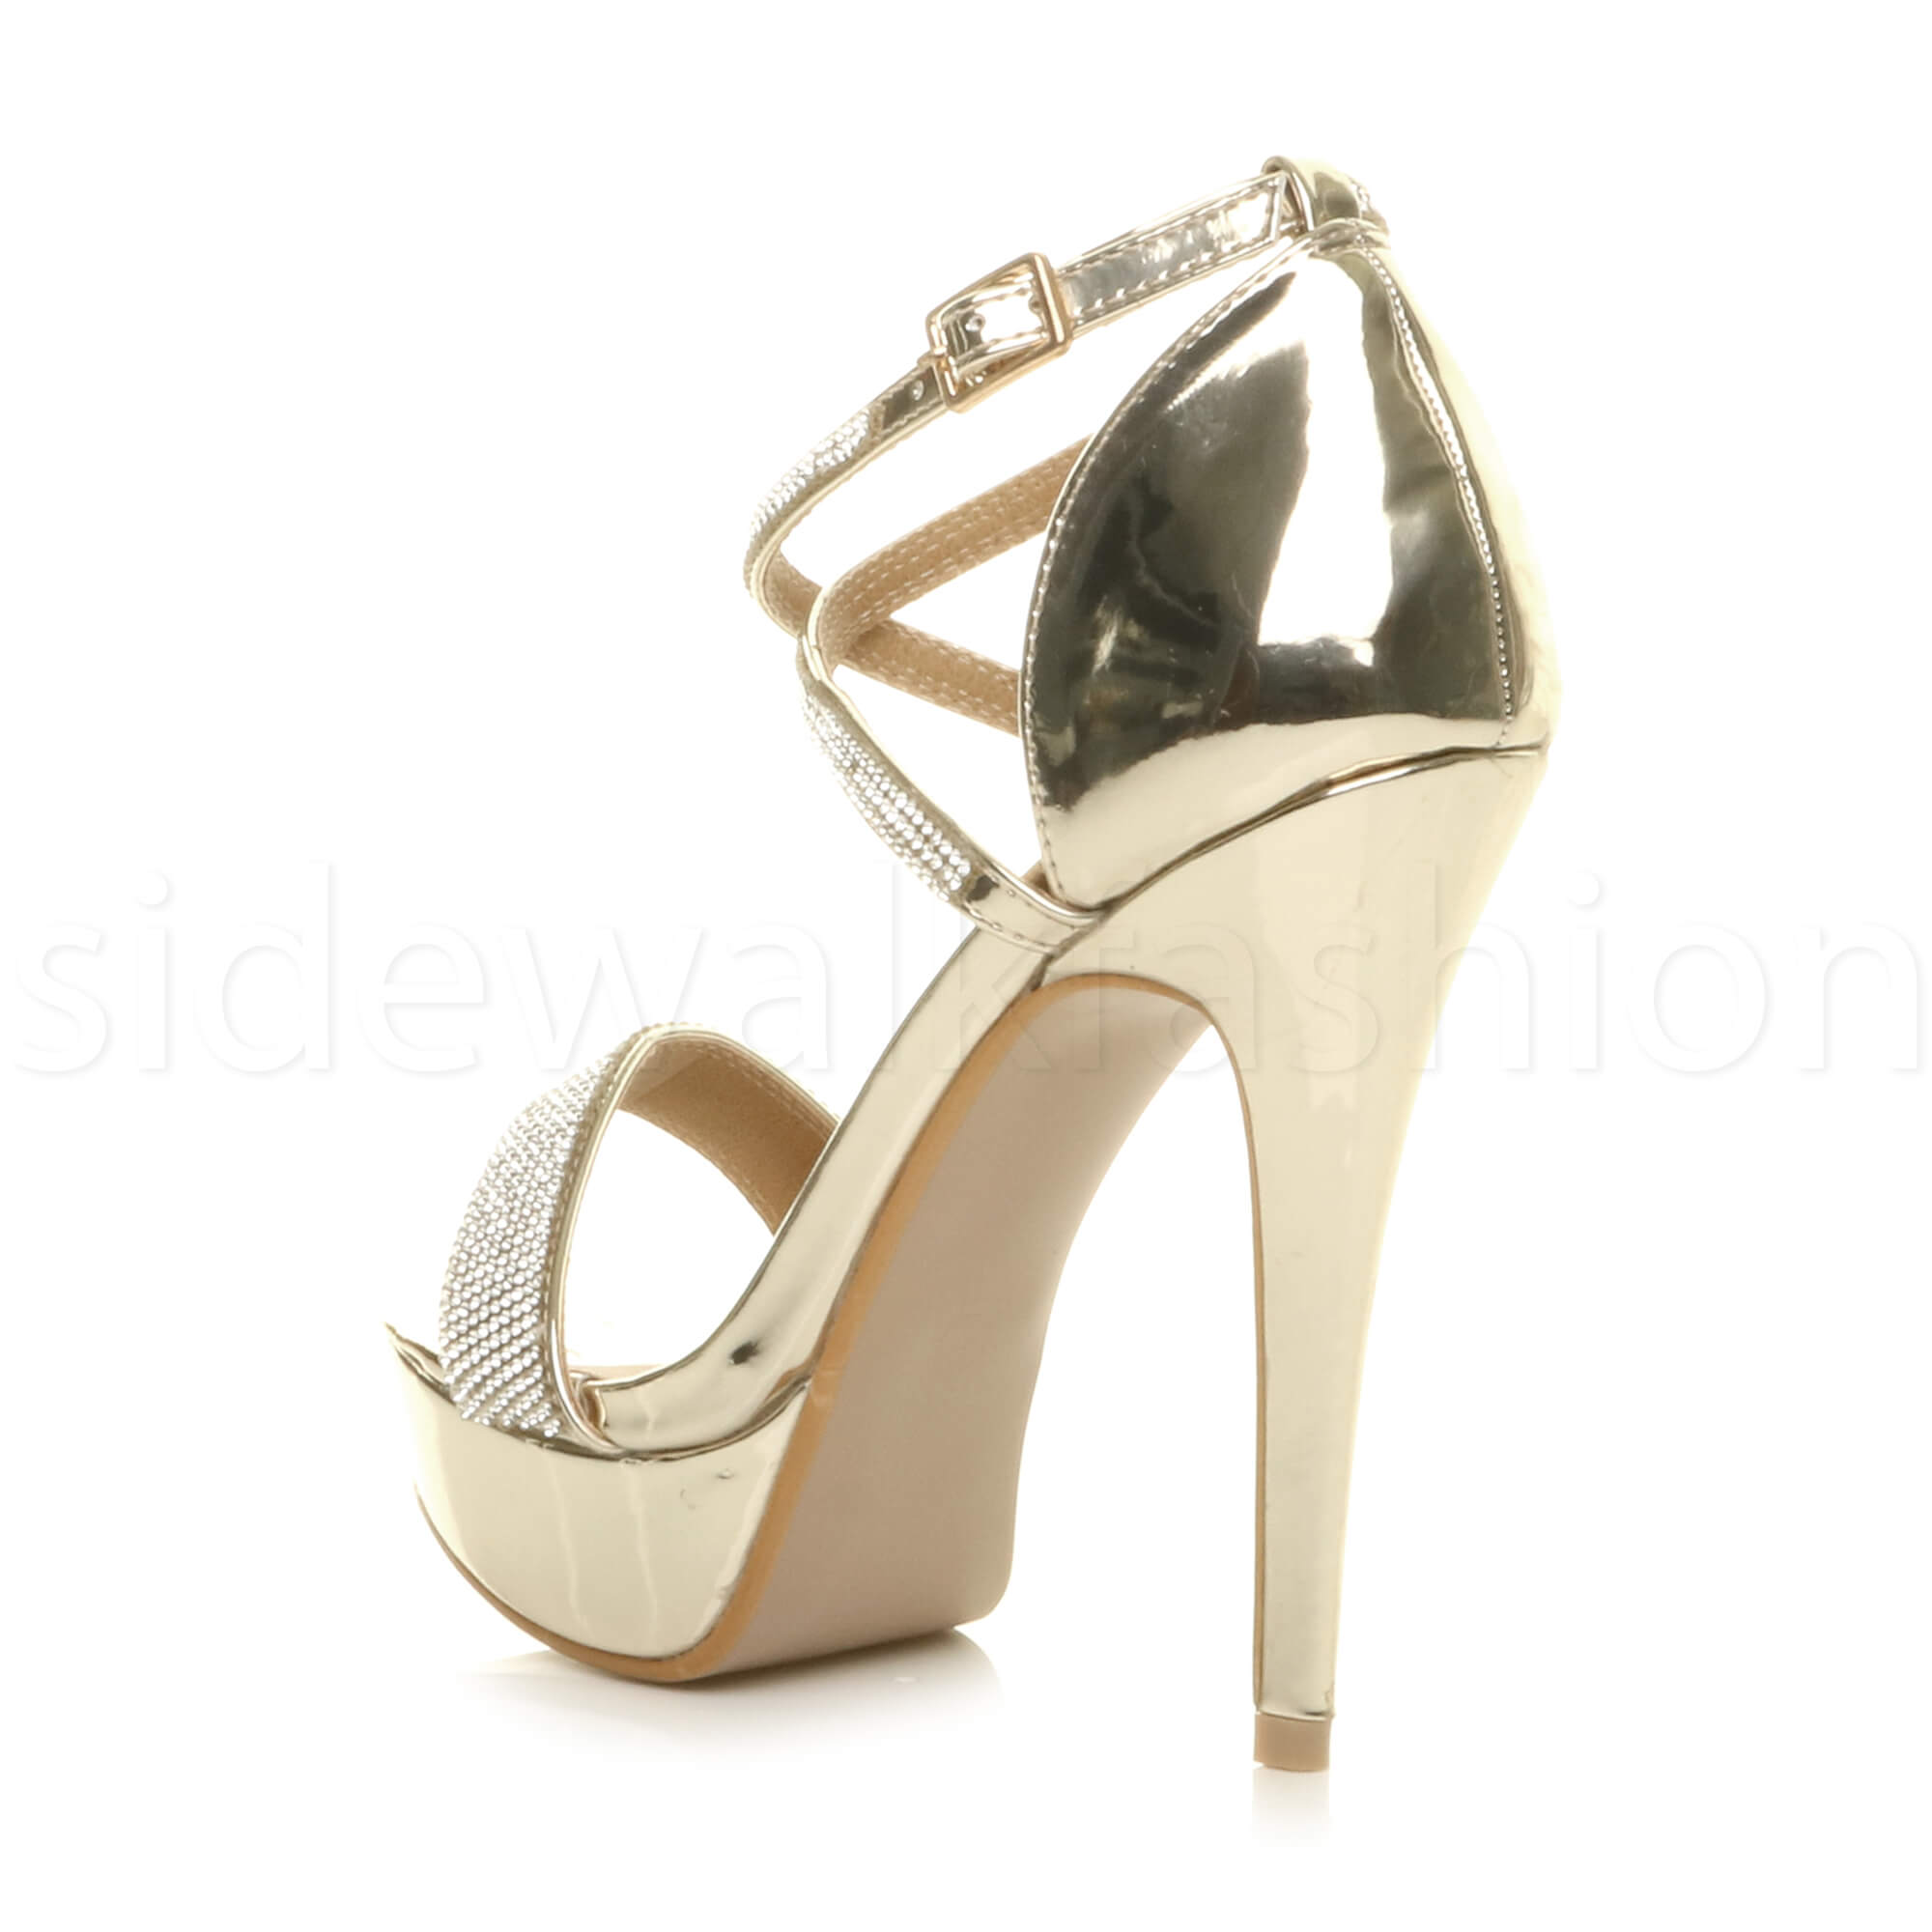 Details about Womens ladies high heel platform crossed strappy evening prom sandals size